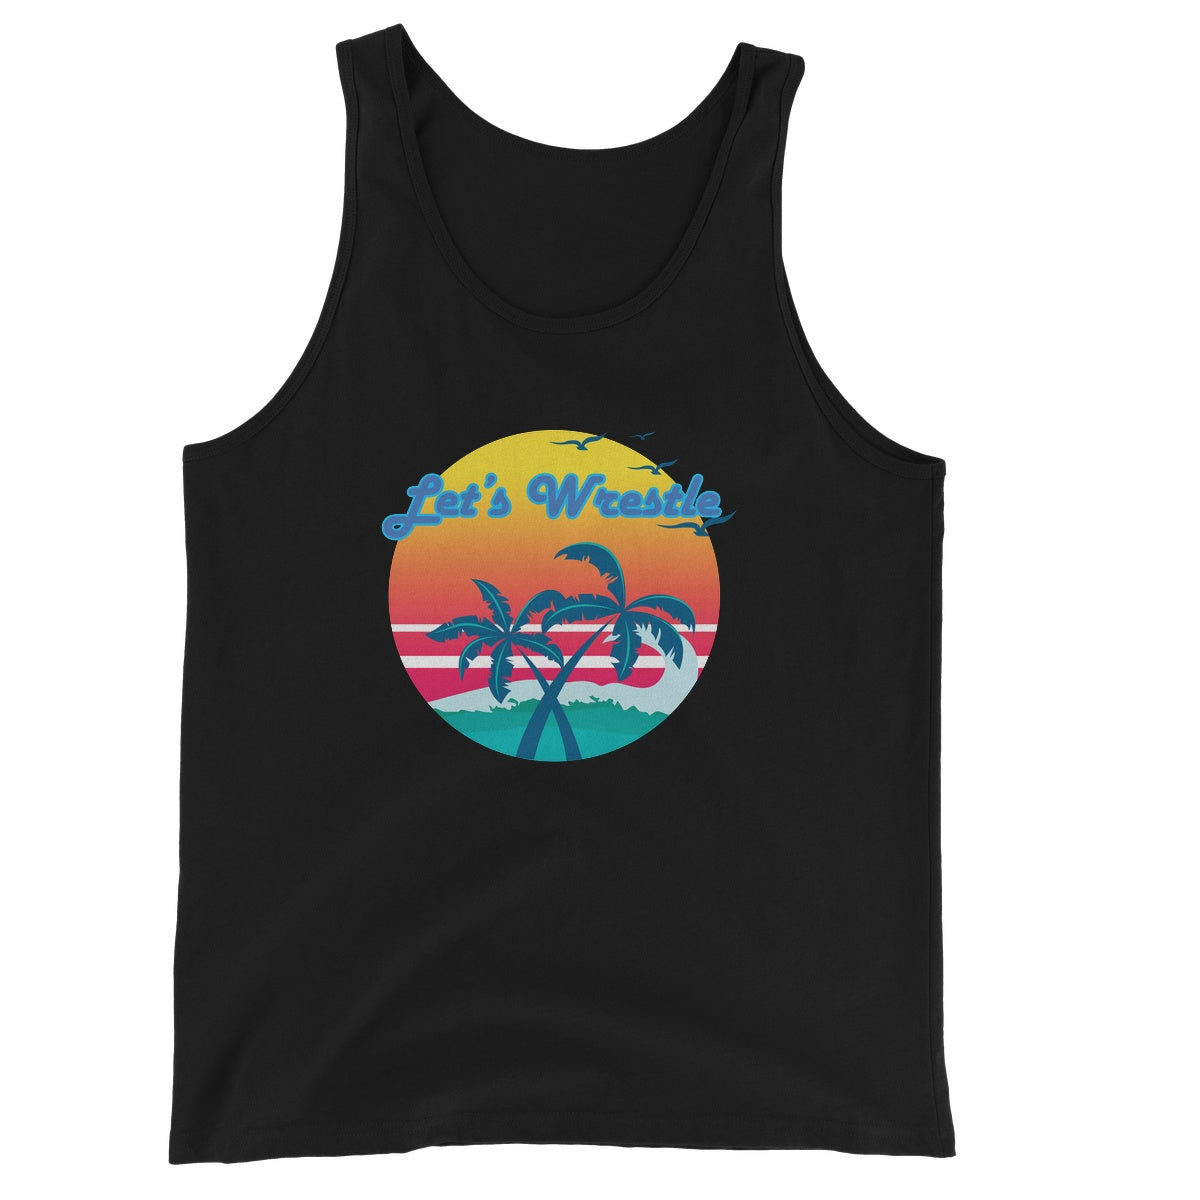 Let's Wrestle Tropical Heat Wave Unisex Jersey Tank Top